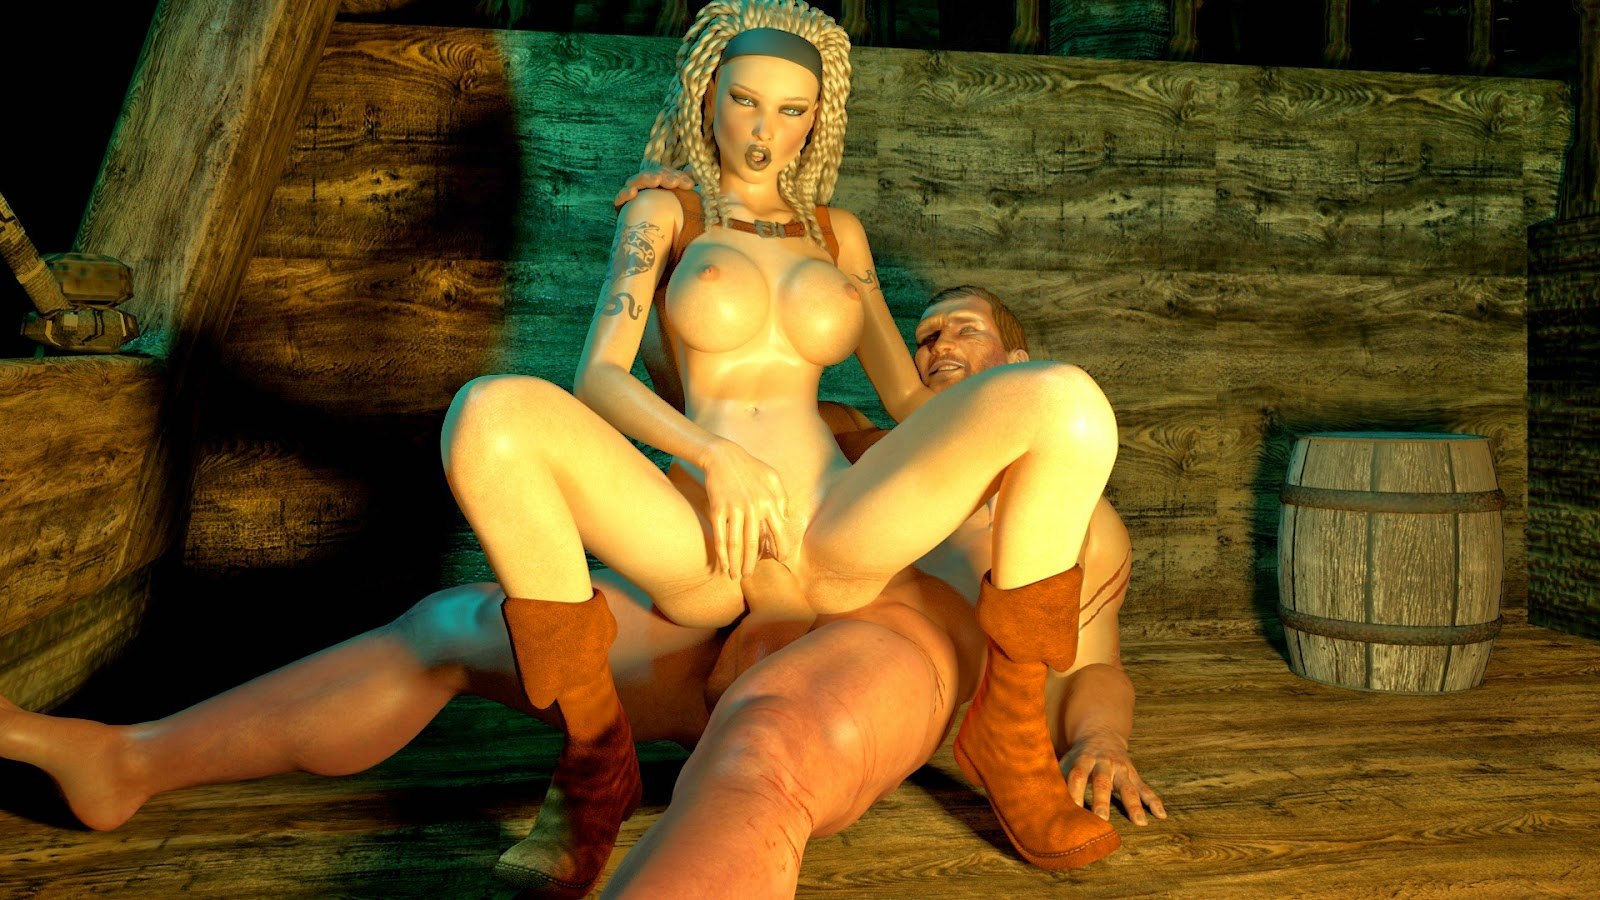 Screenshot game porno exploited scene